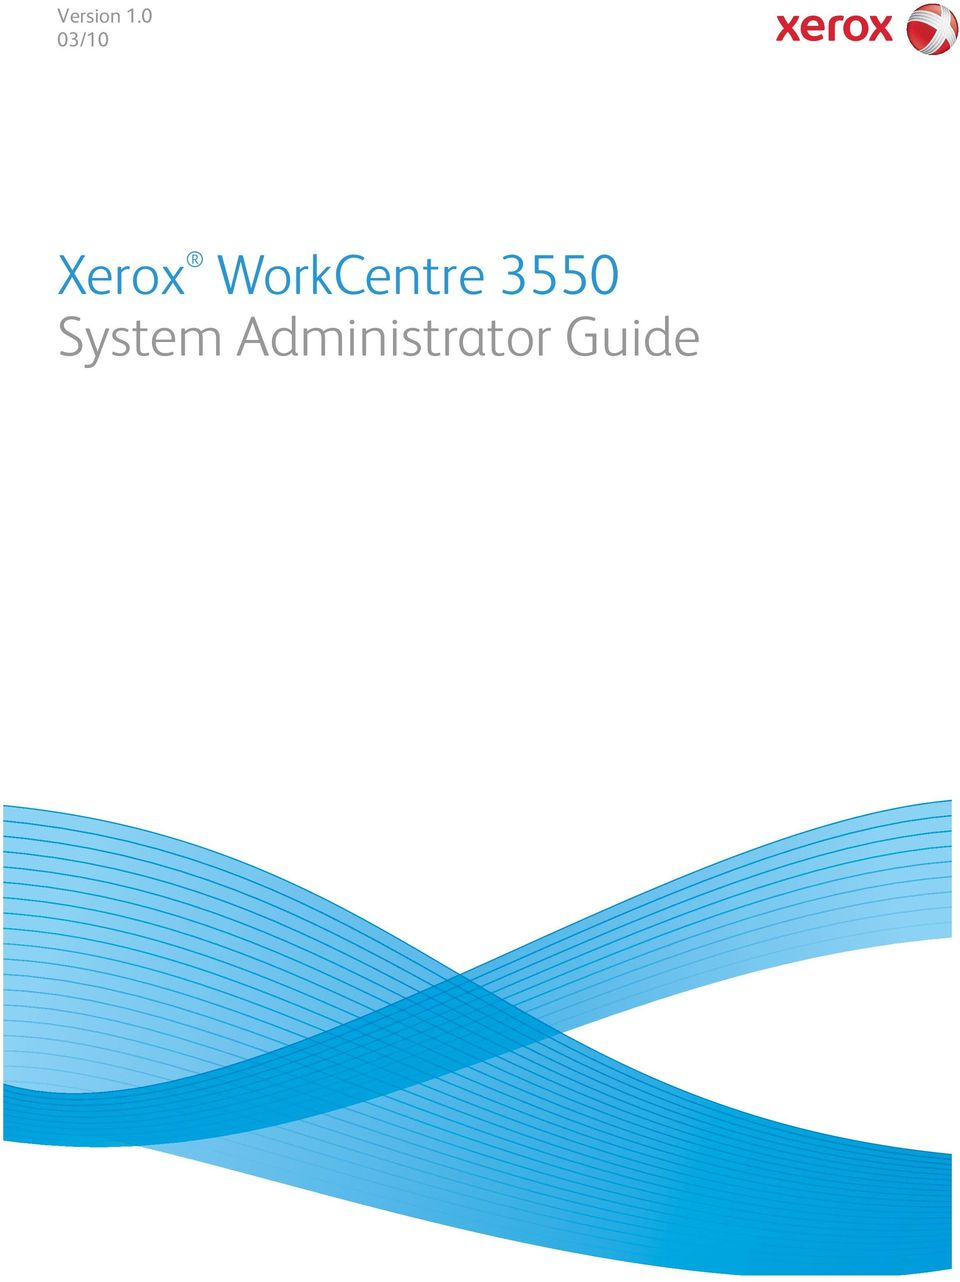 WorkCentre 3550